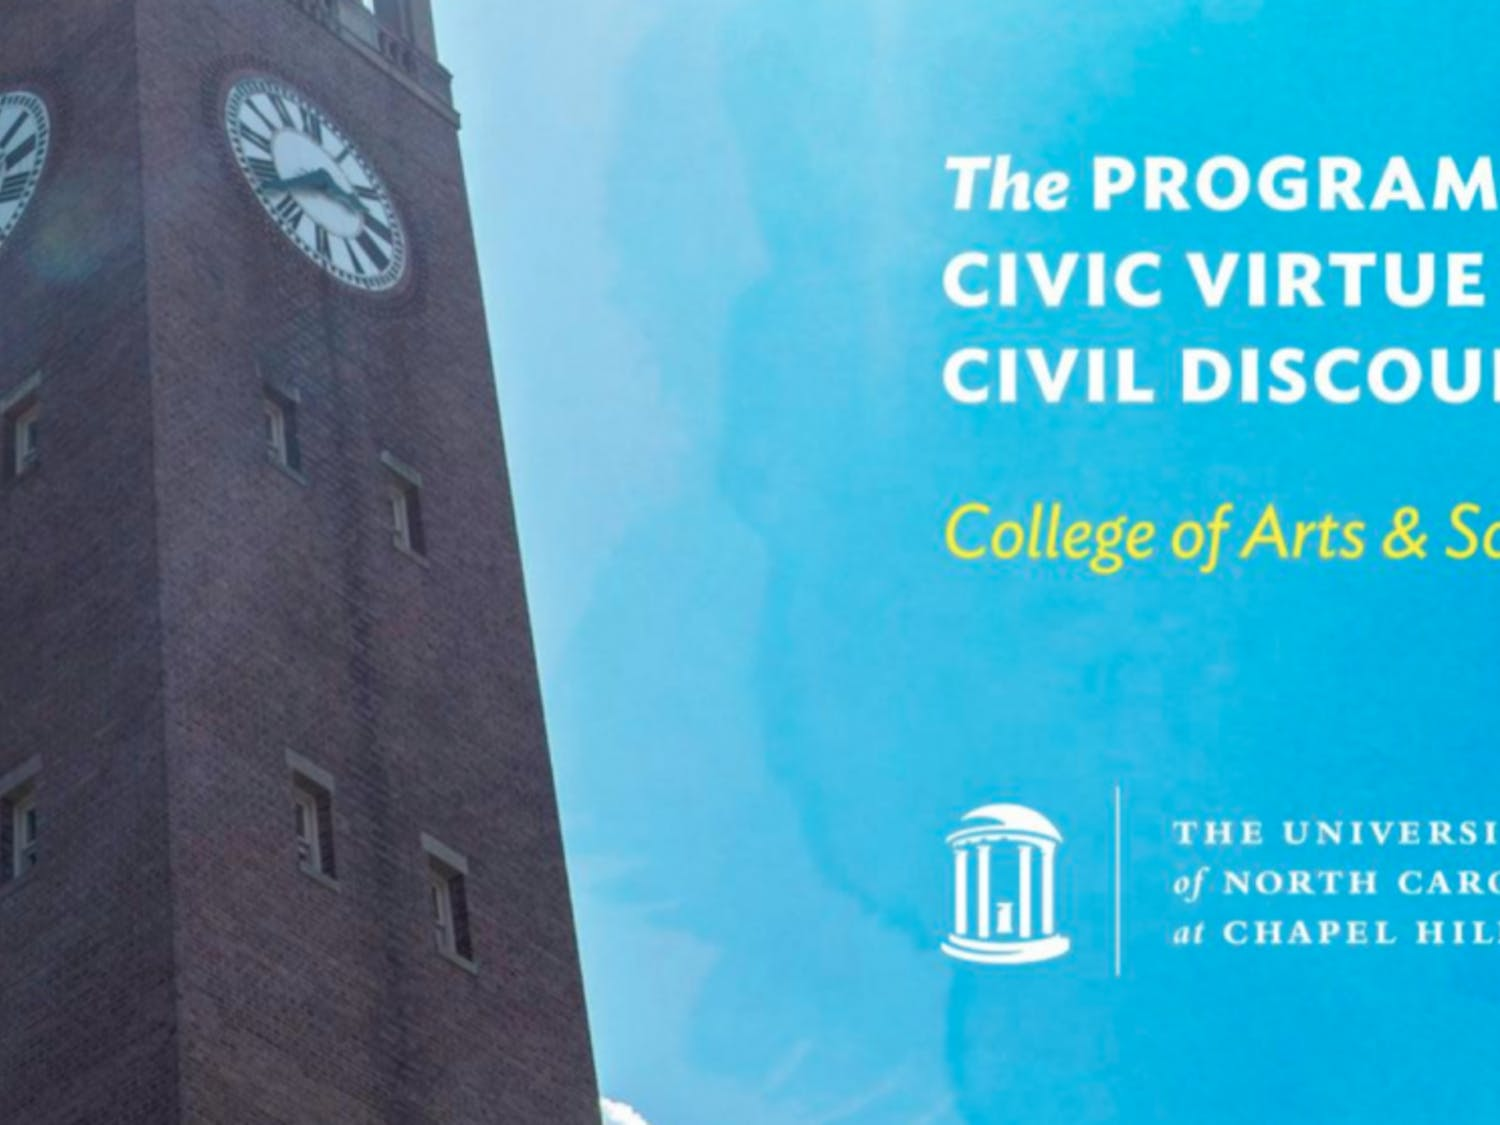 The Program for Civic Virtue and Civil Discourse, approved by Terry Rhodes, the interim dean for the College of Arts & Sciences, has generated controversy among faculty as it moves through its planning phases. Photo courtesy of UNC.